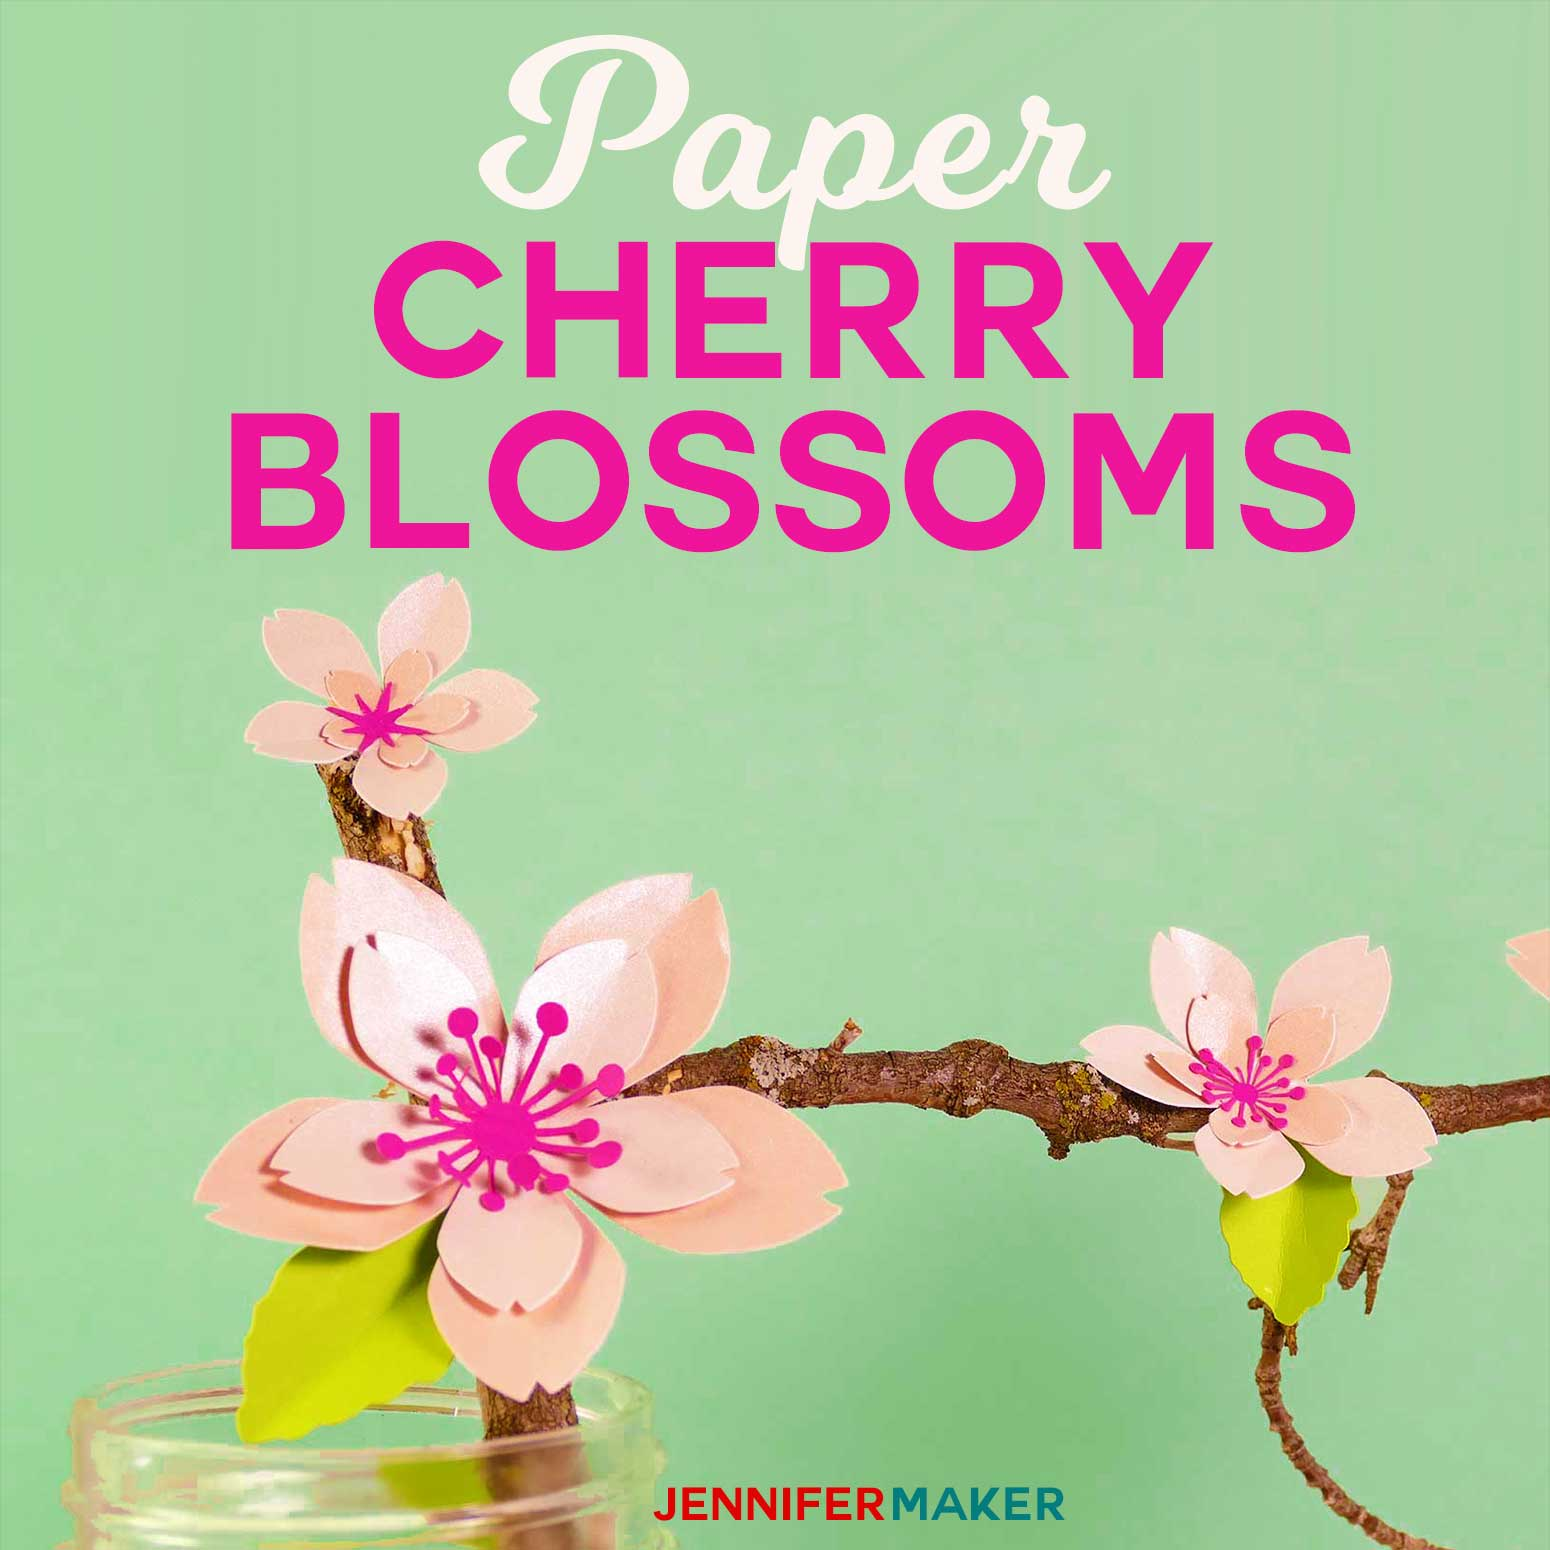 Make Paper Cherry Blossom Flowers For Spring Jennifer Maker